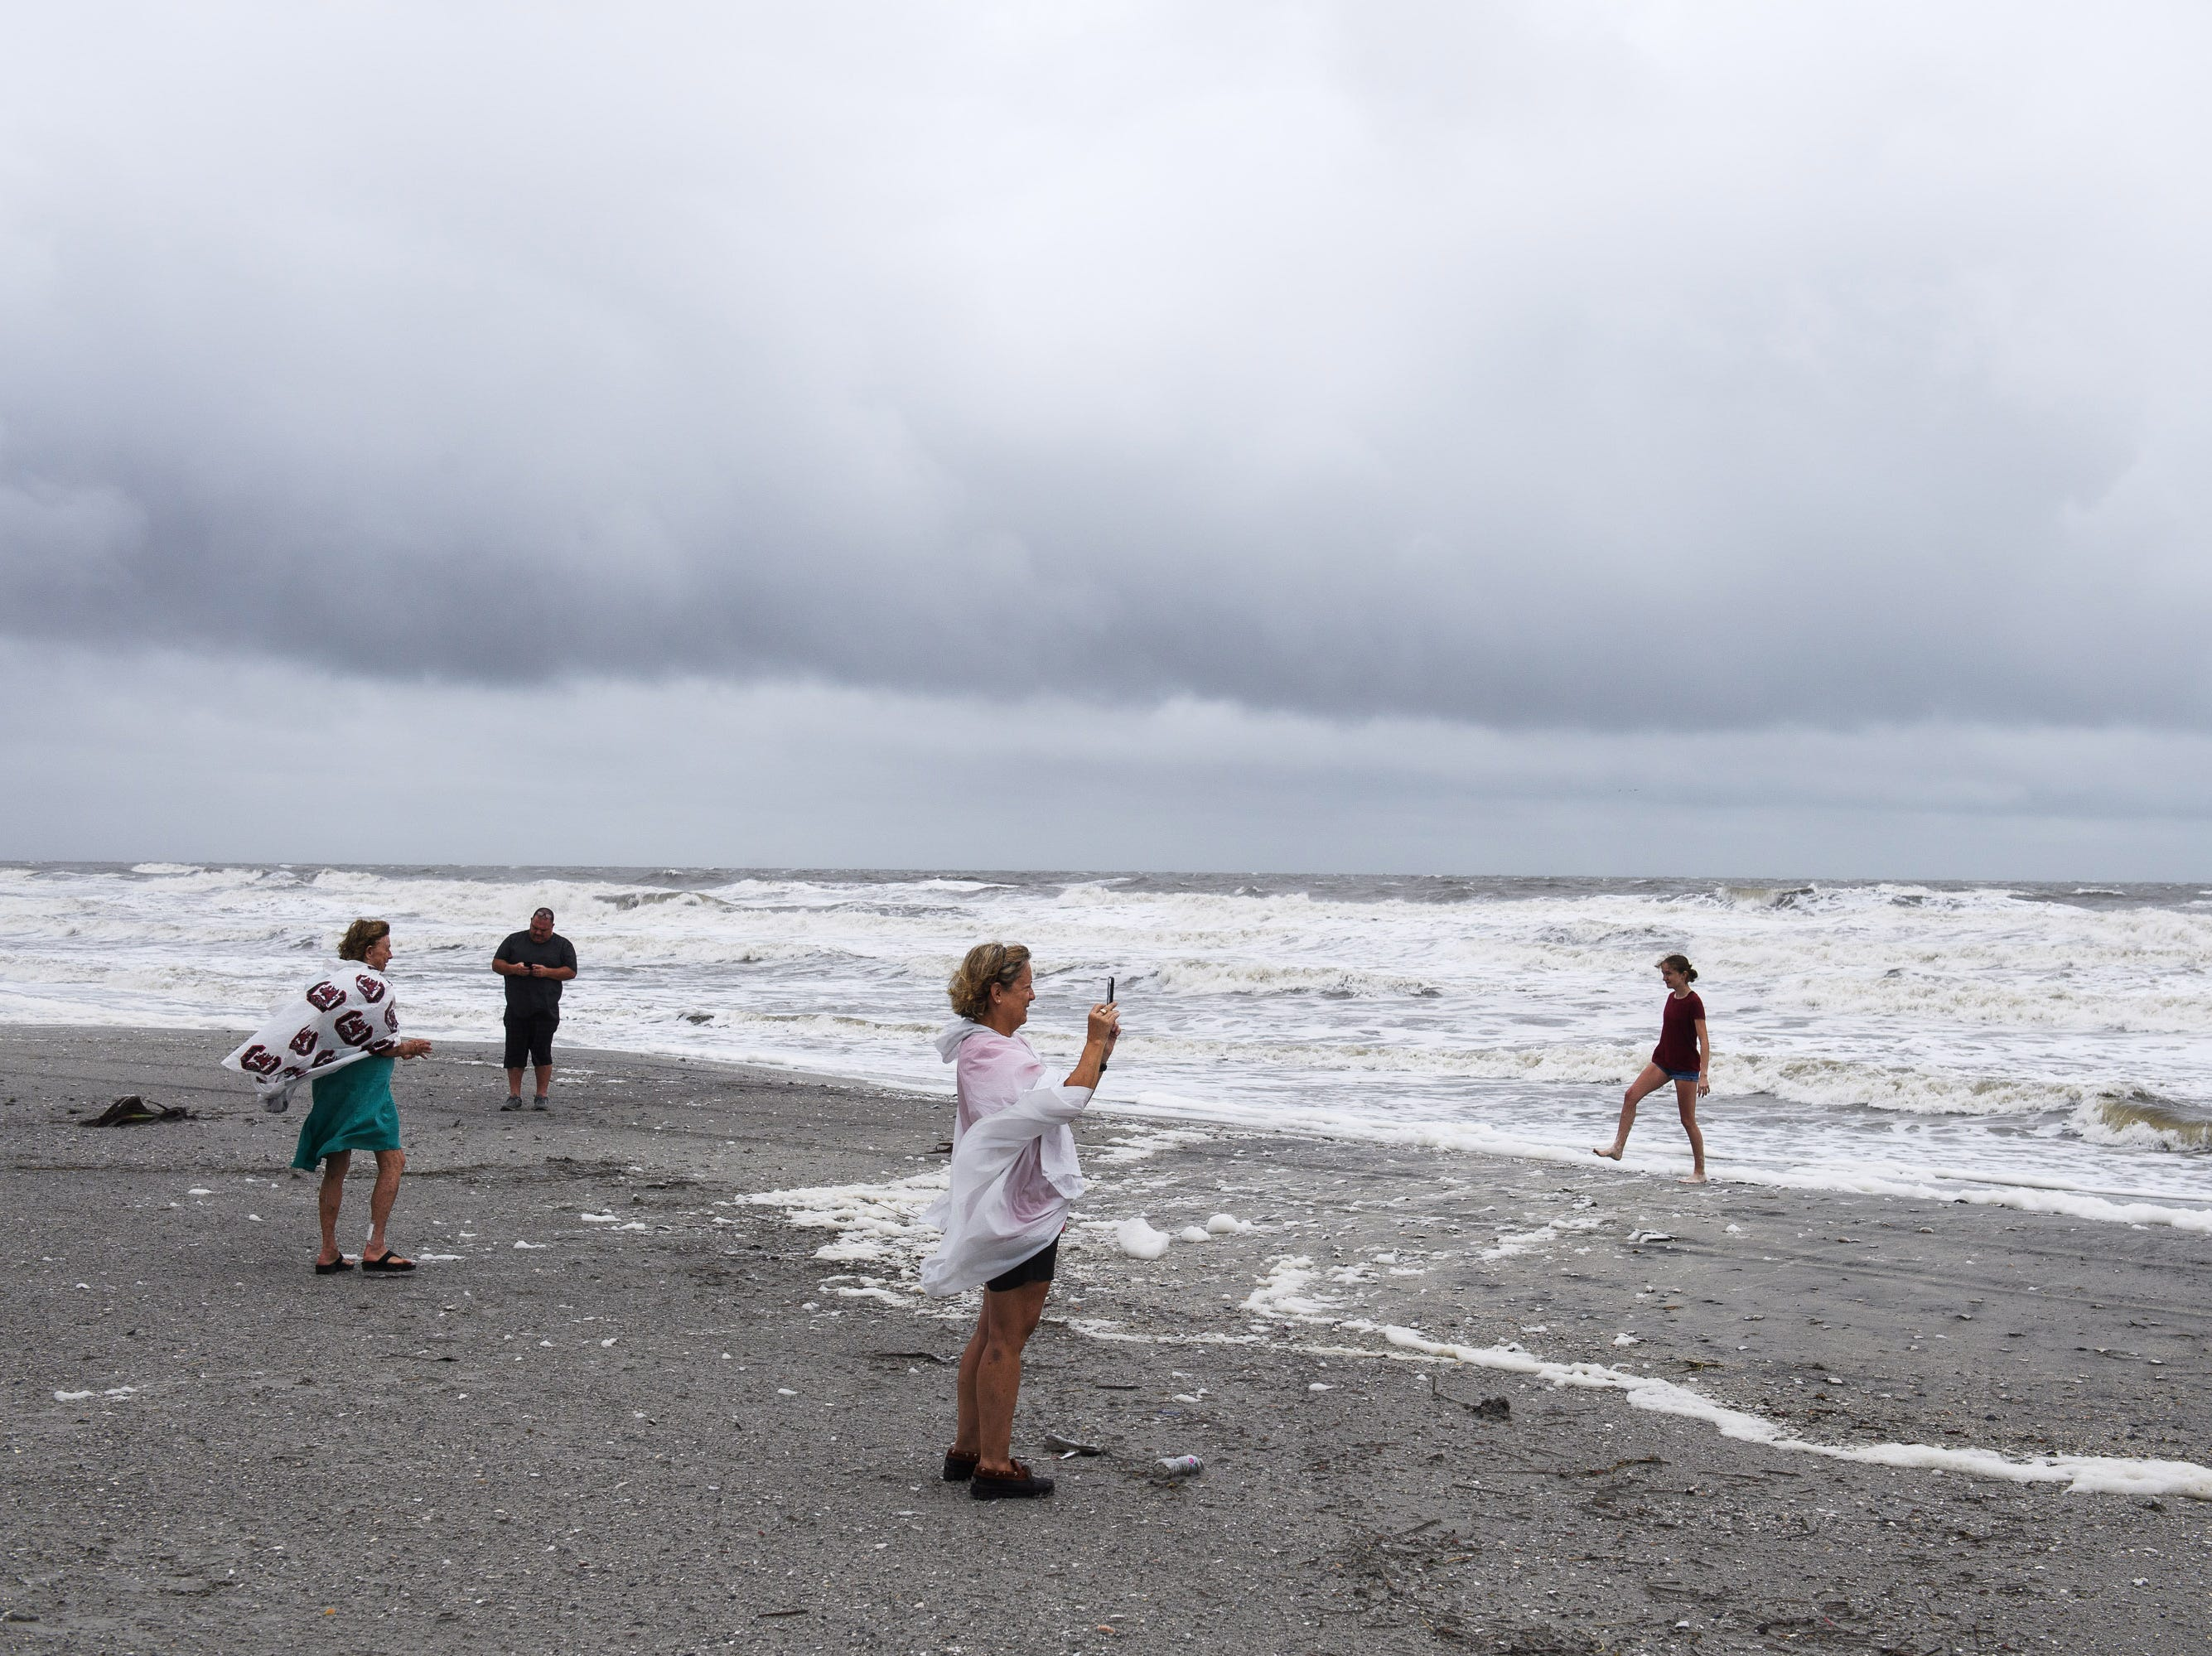 North Myrtle Beach, S.C. residents check out the beach as high tide begins to come in on Saturday, Sept. 15, 2018.